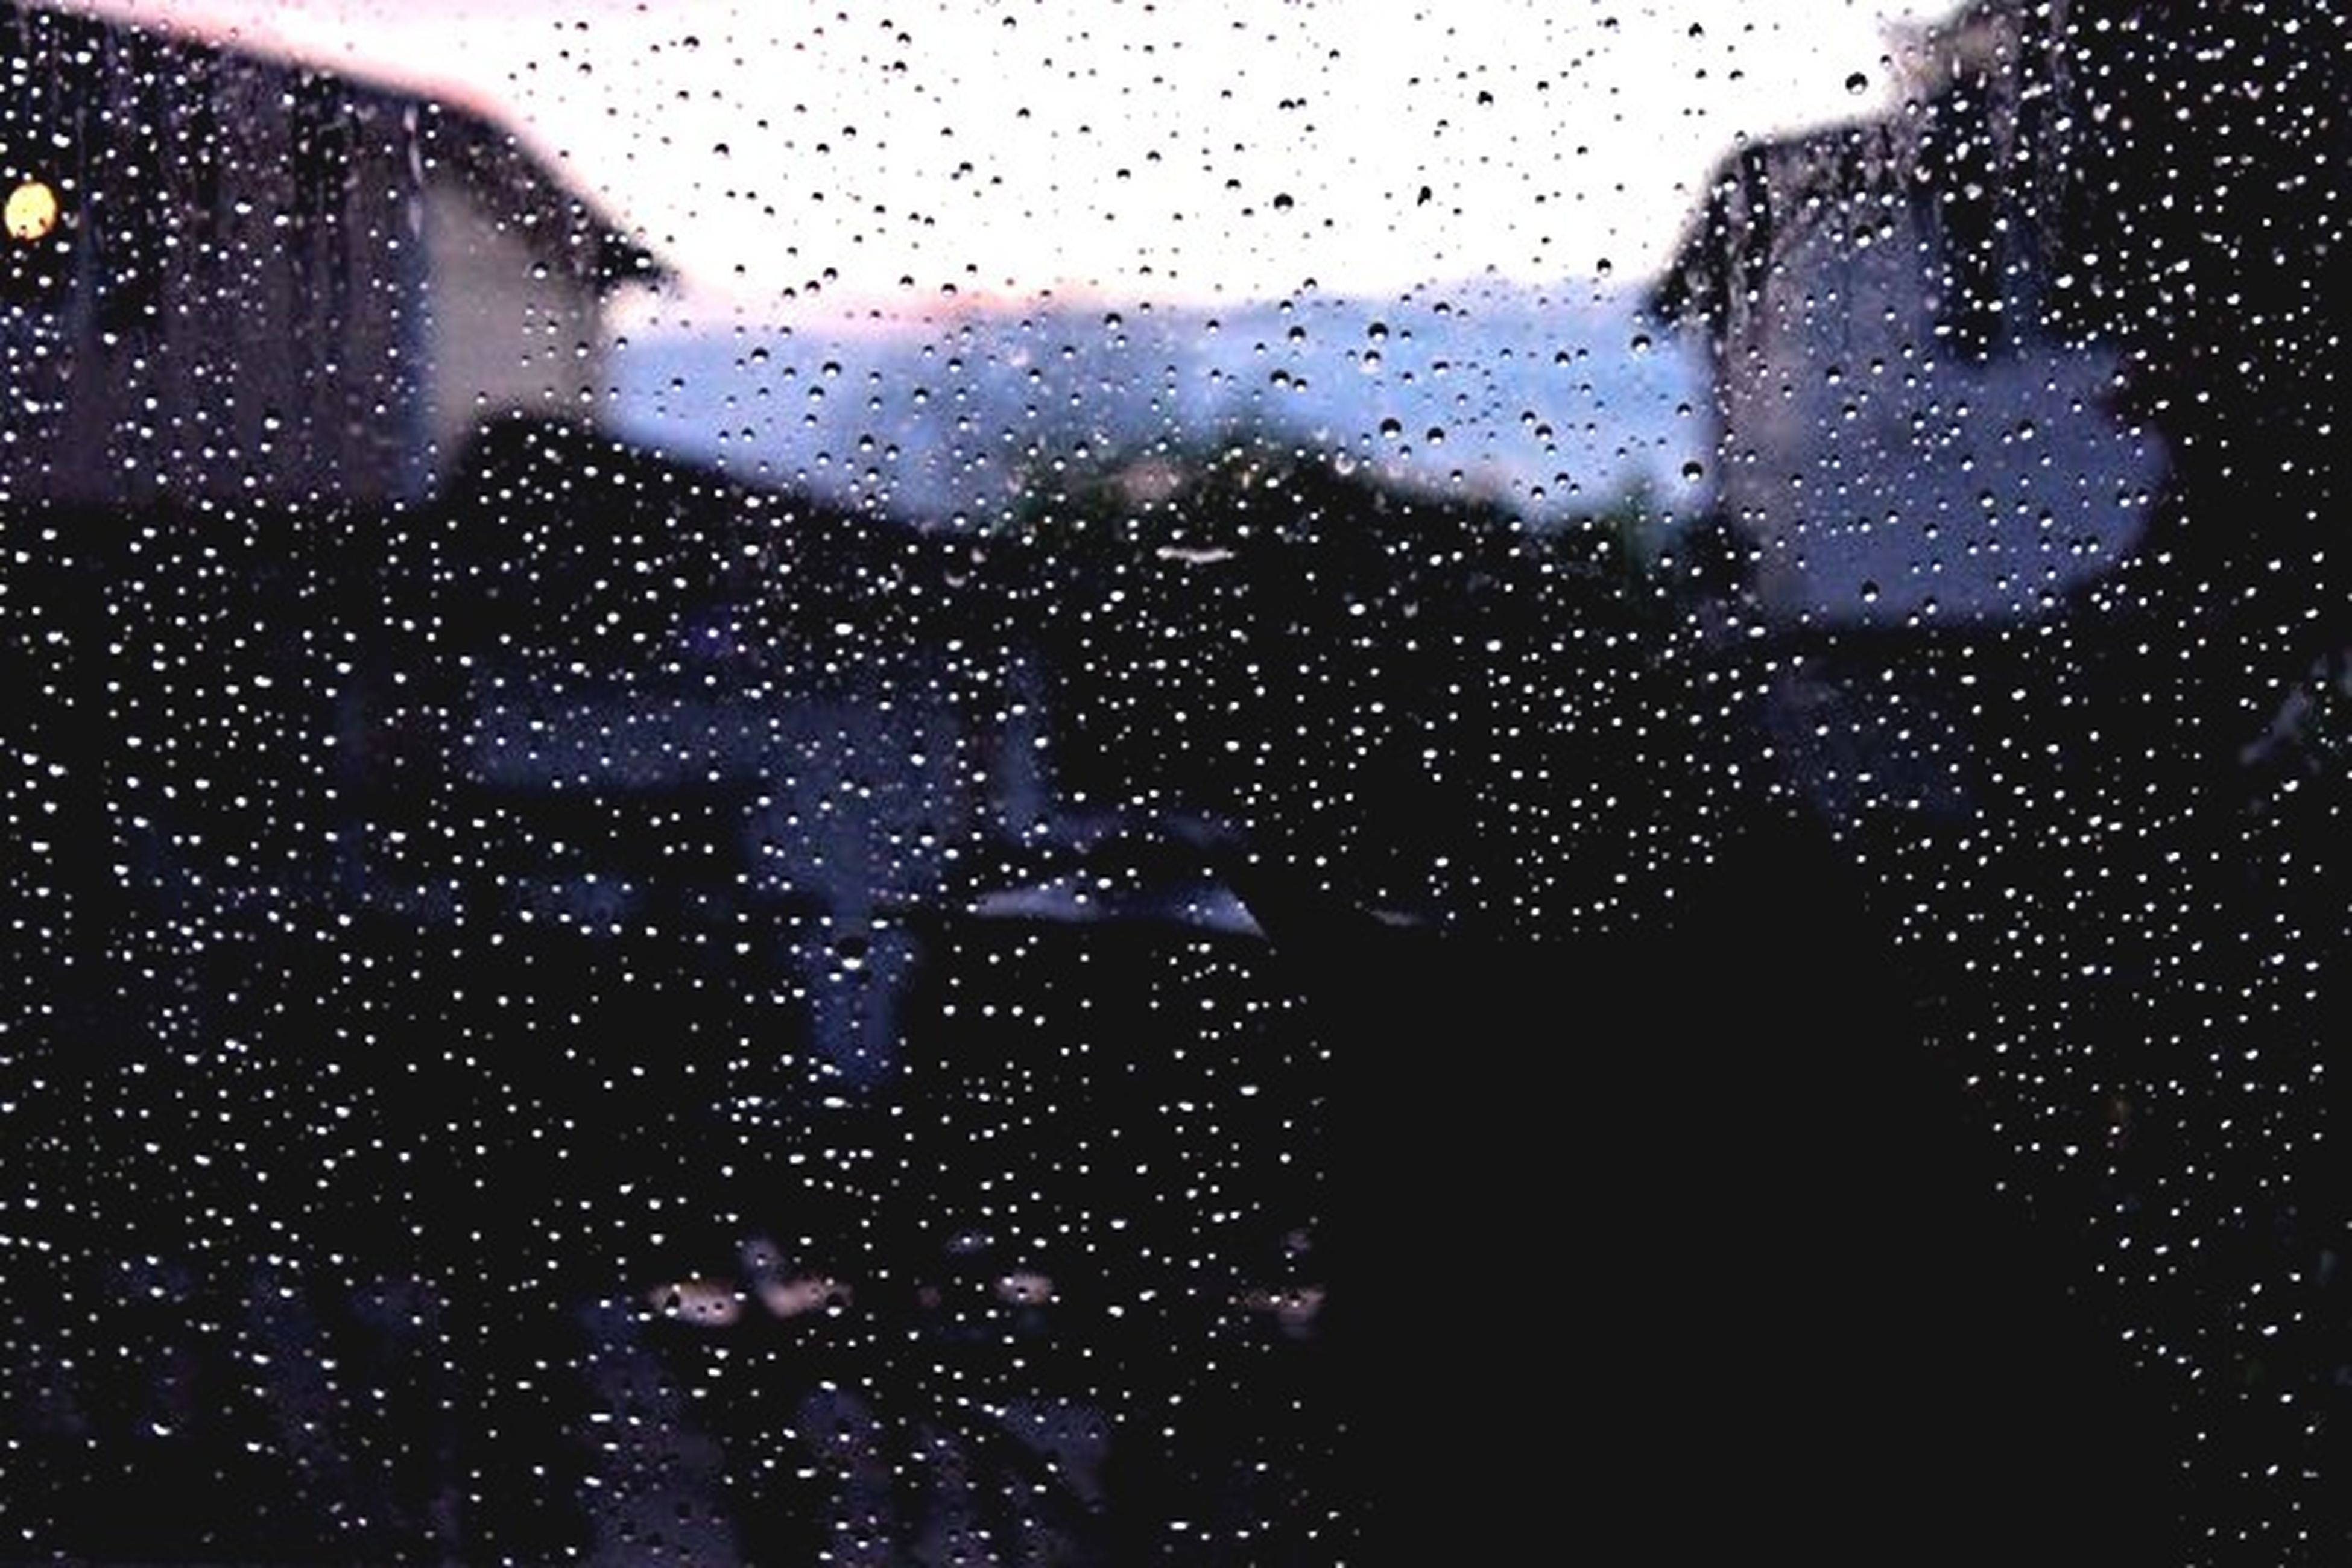 window, drop, transparent, wet, indoors, glass - material, rain, raindrop, water, weather, glass, season, looking through window, sky, full frame, backgrounds, focus on foreground, water drop, built structure, car